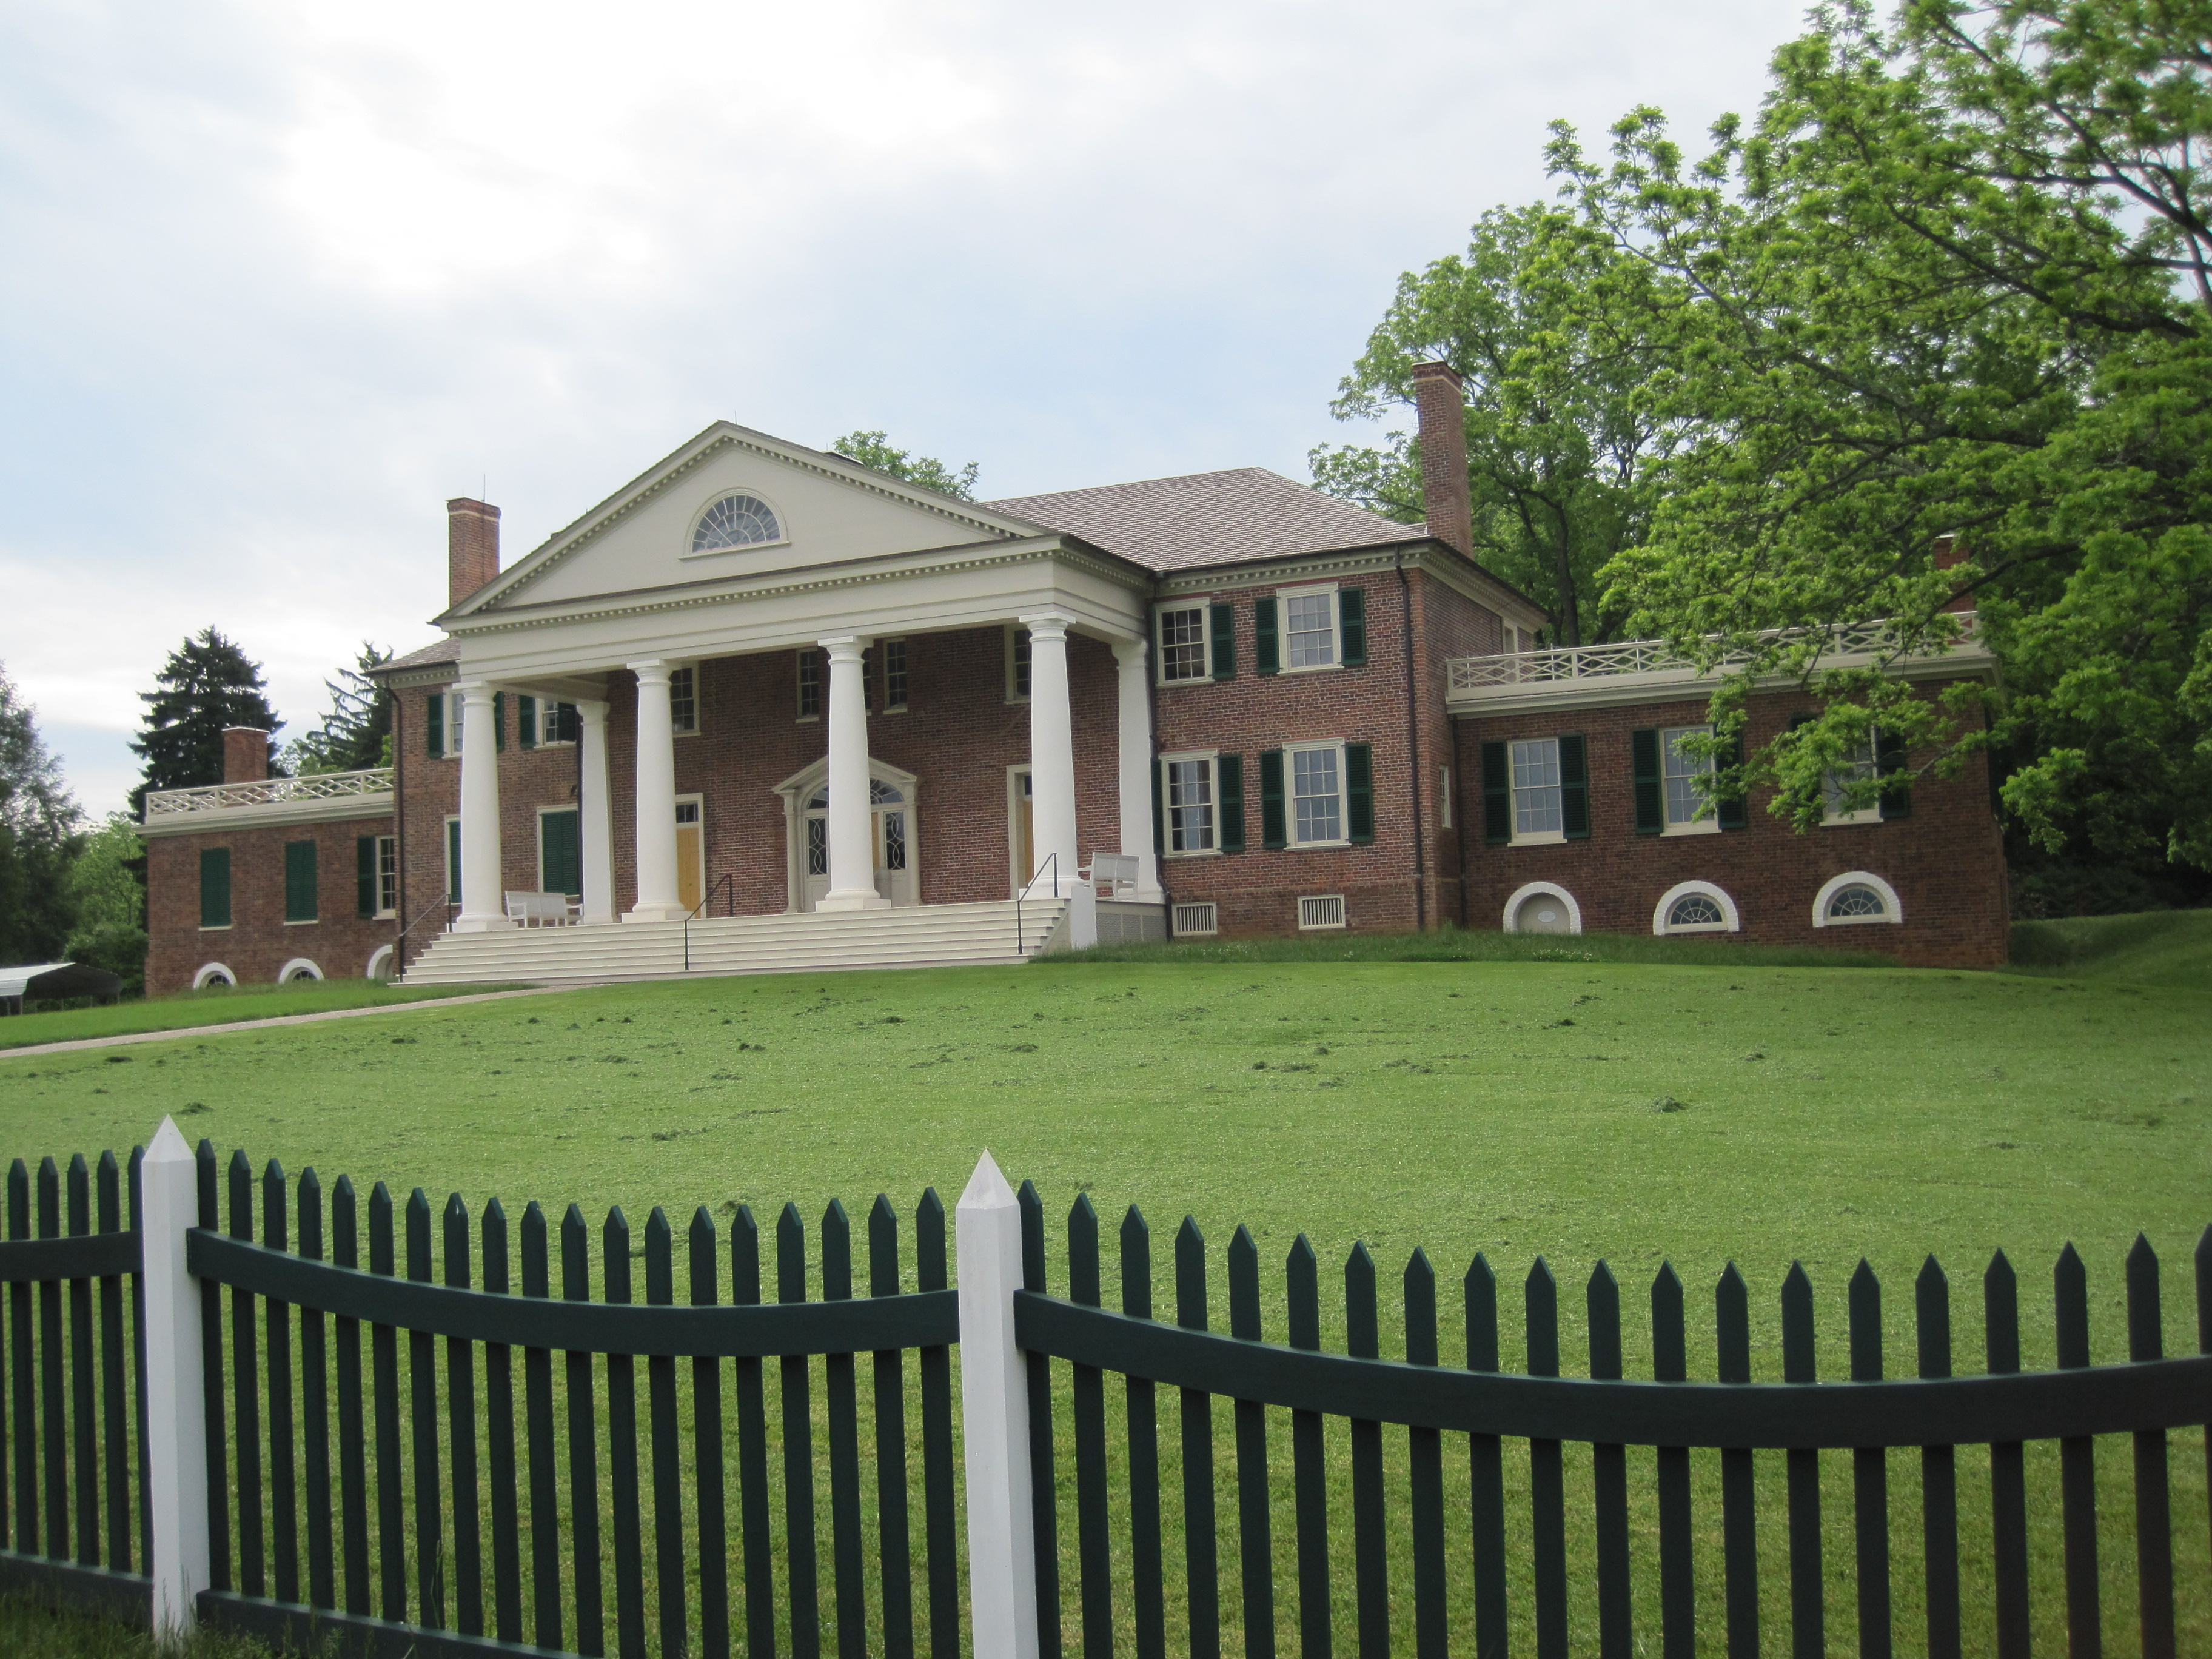 Montpelier - May 2011